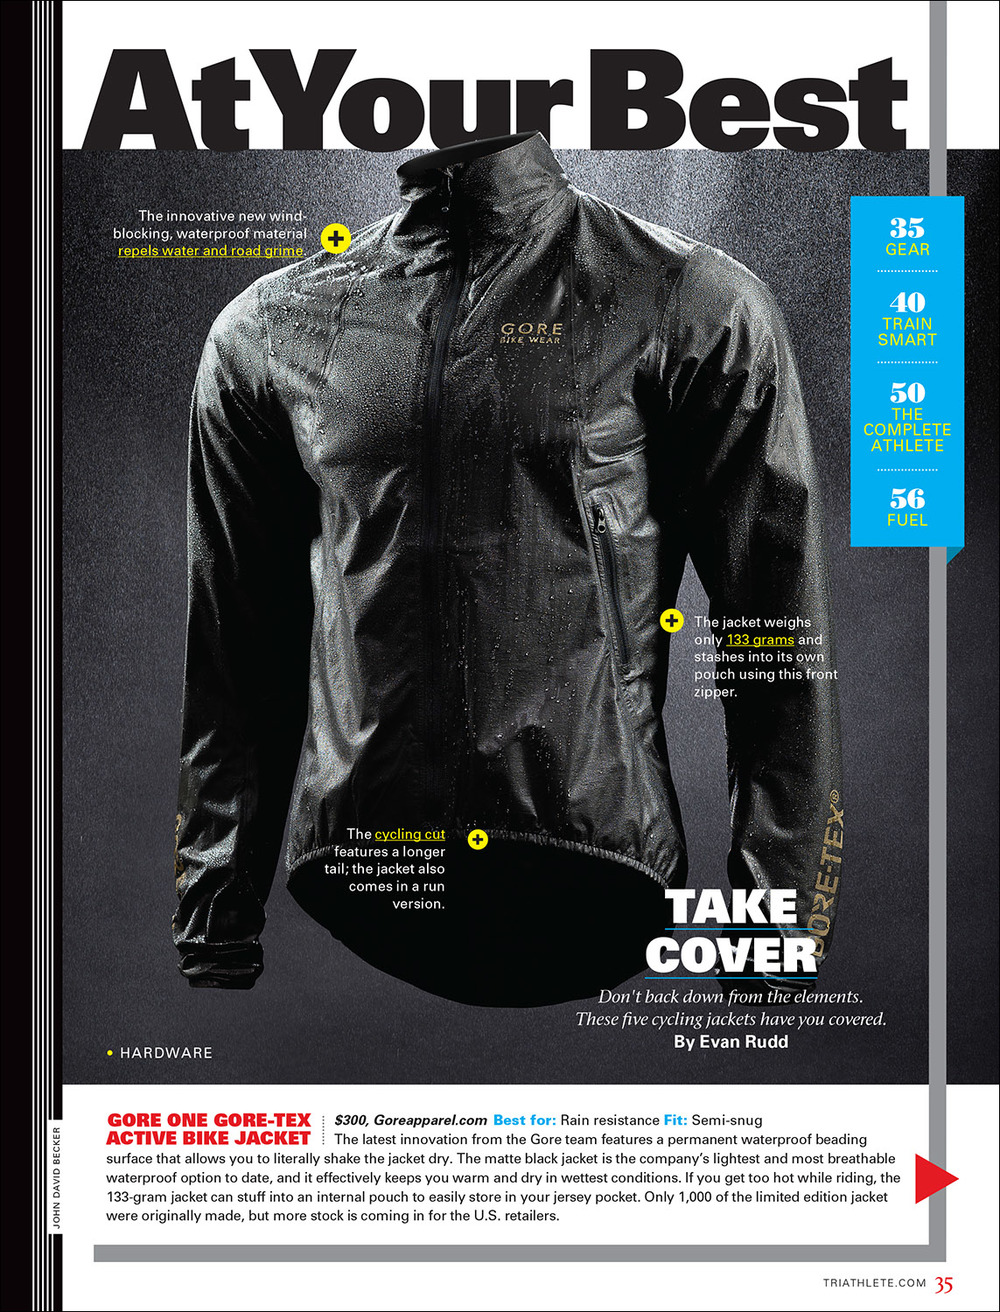 Triathlete Mag_0316 37.jpg